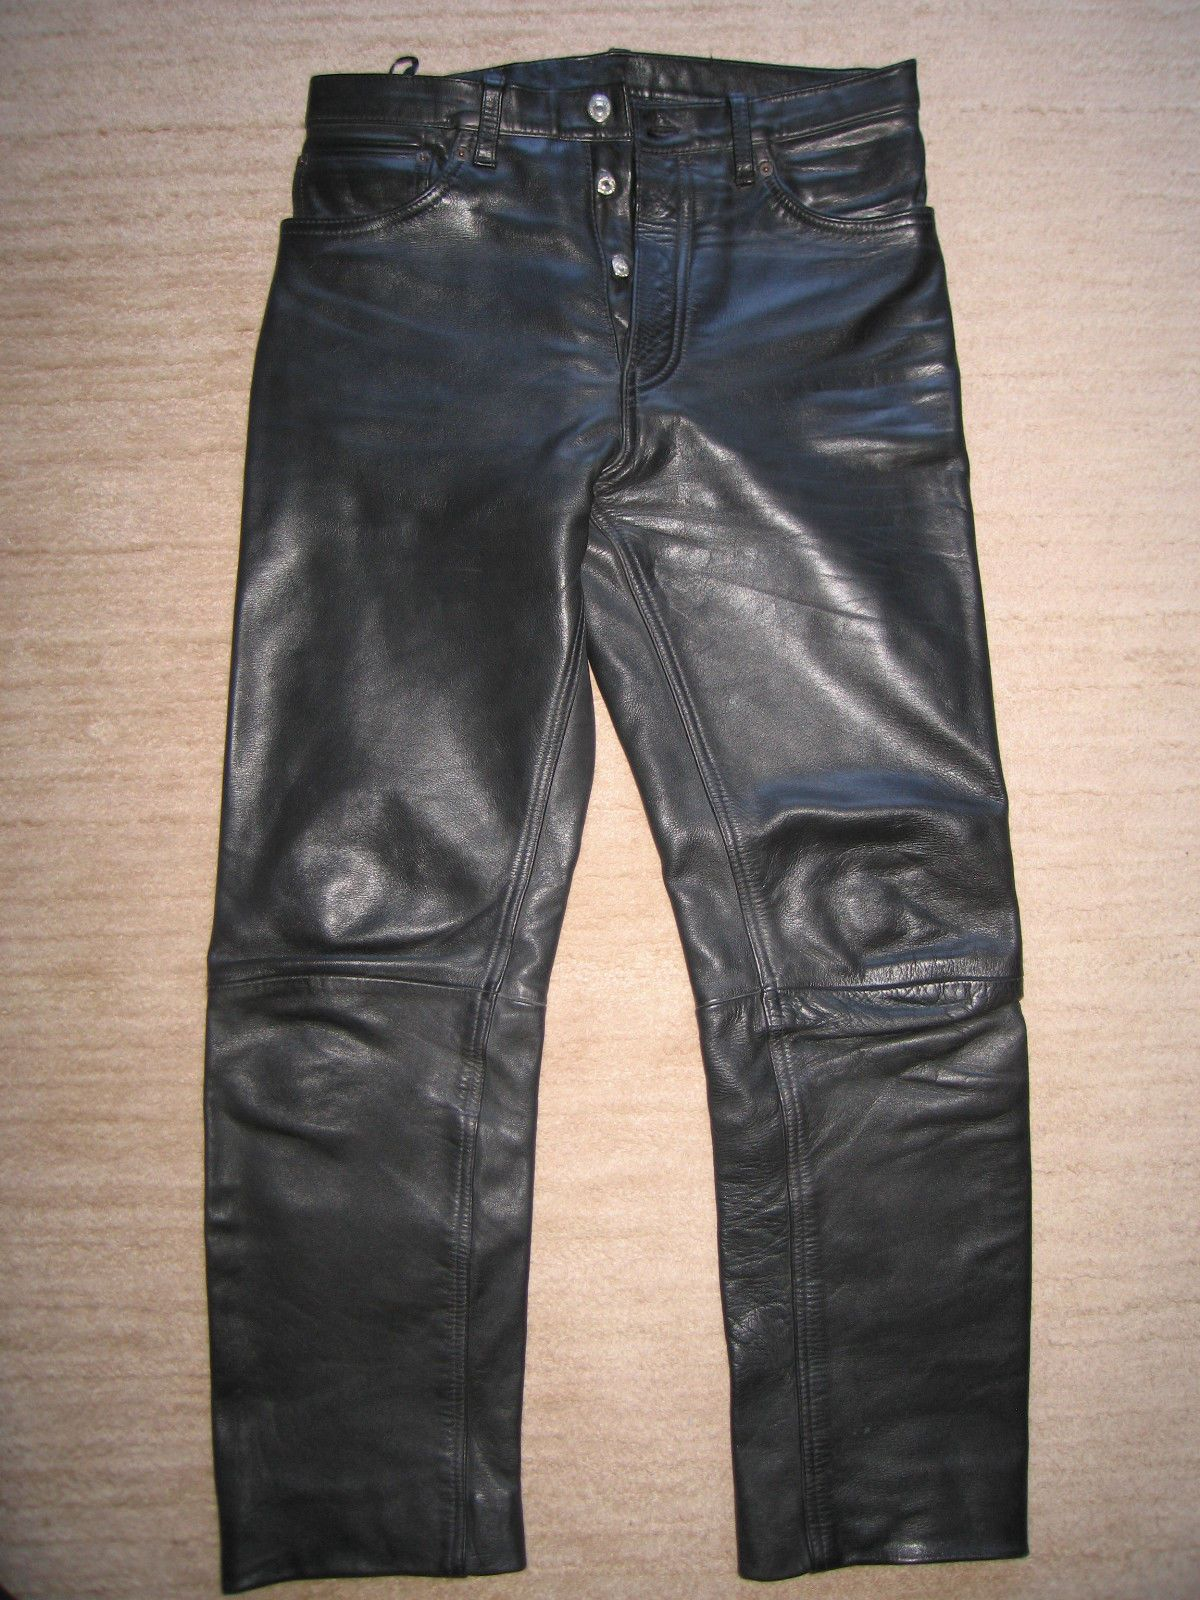 306a53451b8 Levi's 501 Leather pants | Fashion Leather | Leather pants, Pants ...